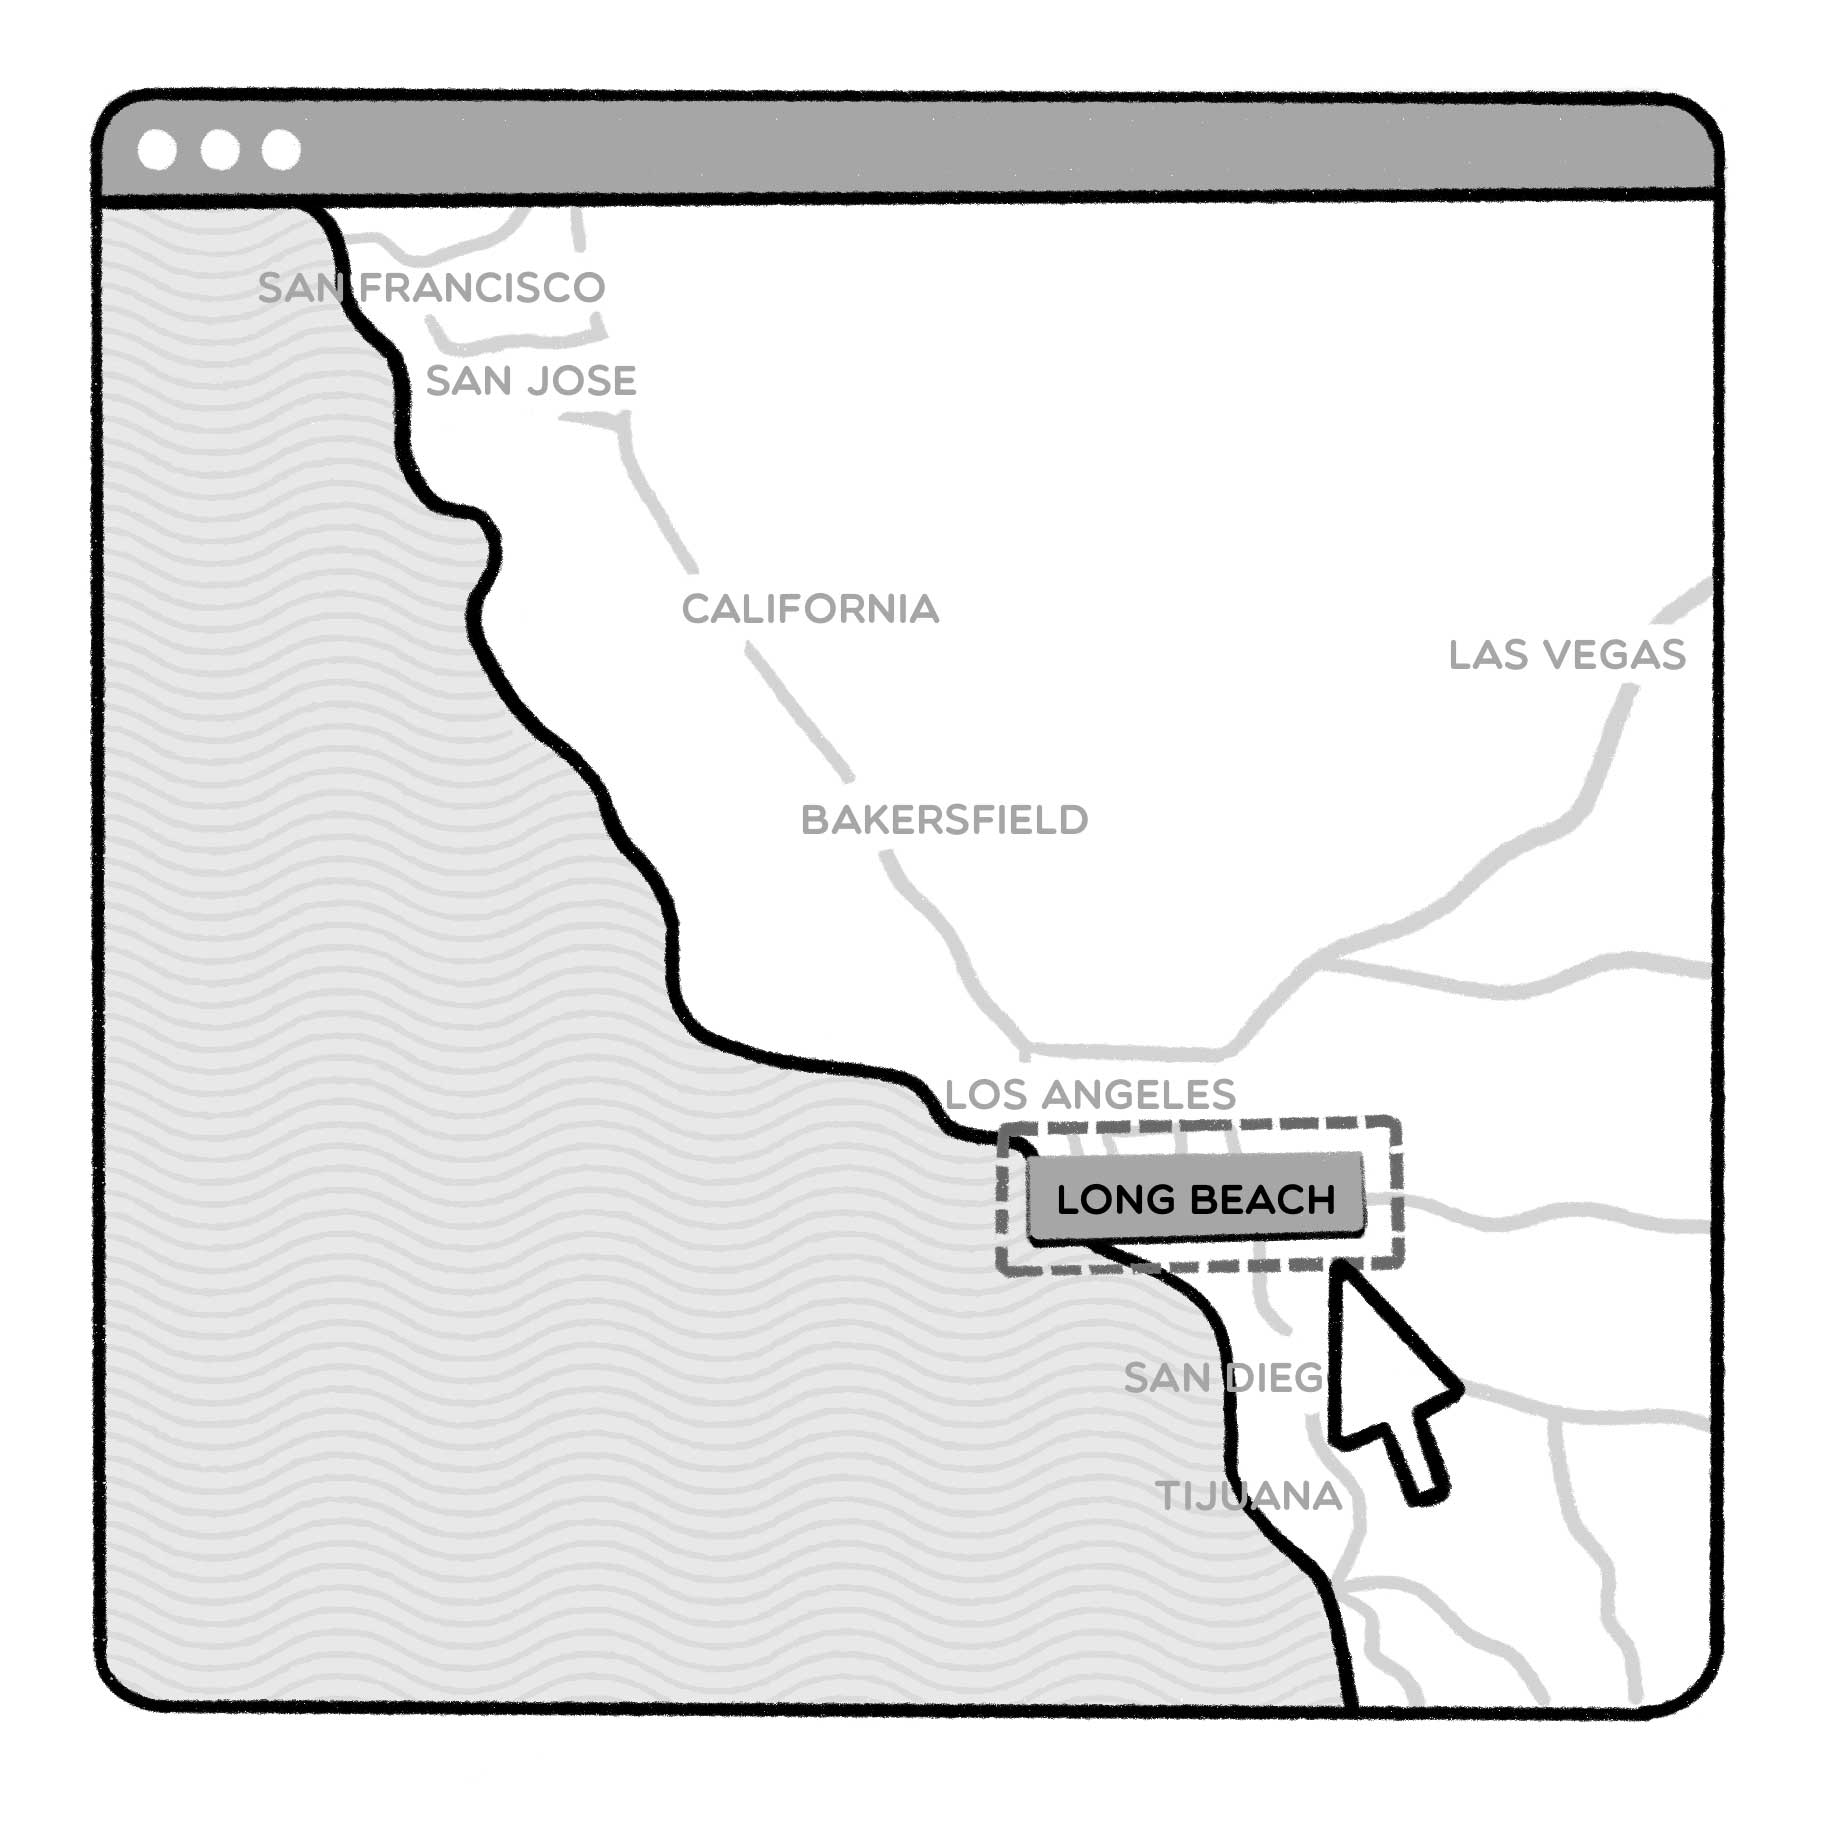 demarcating Long Beach with a specification tool